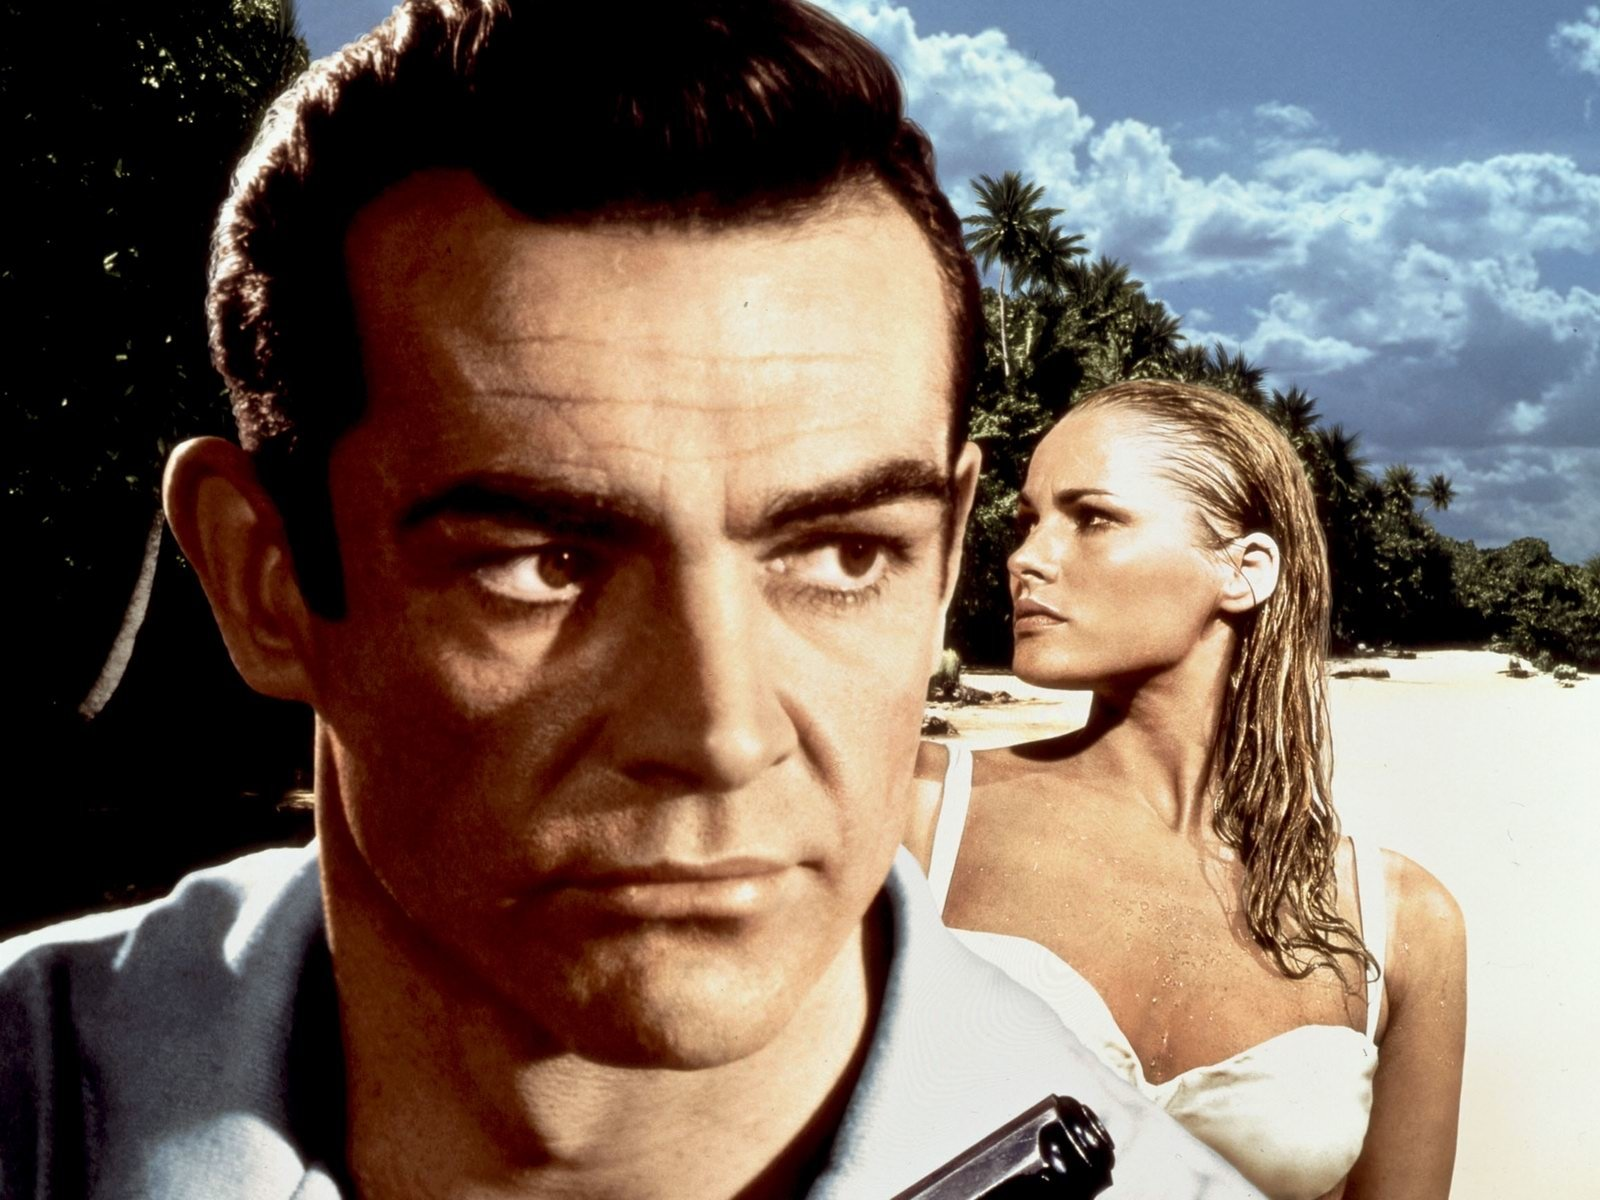 dr no Wallpaper and Background | 1280x1024 | ID:471168